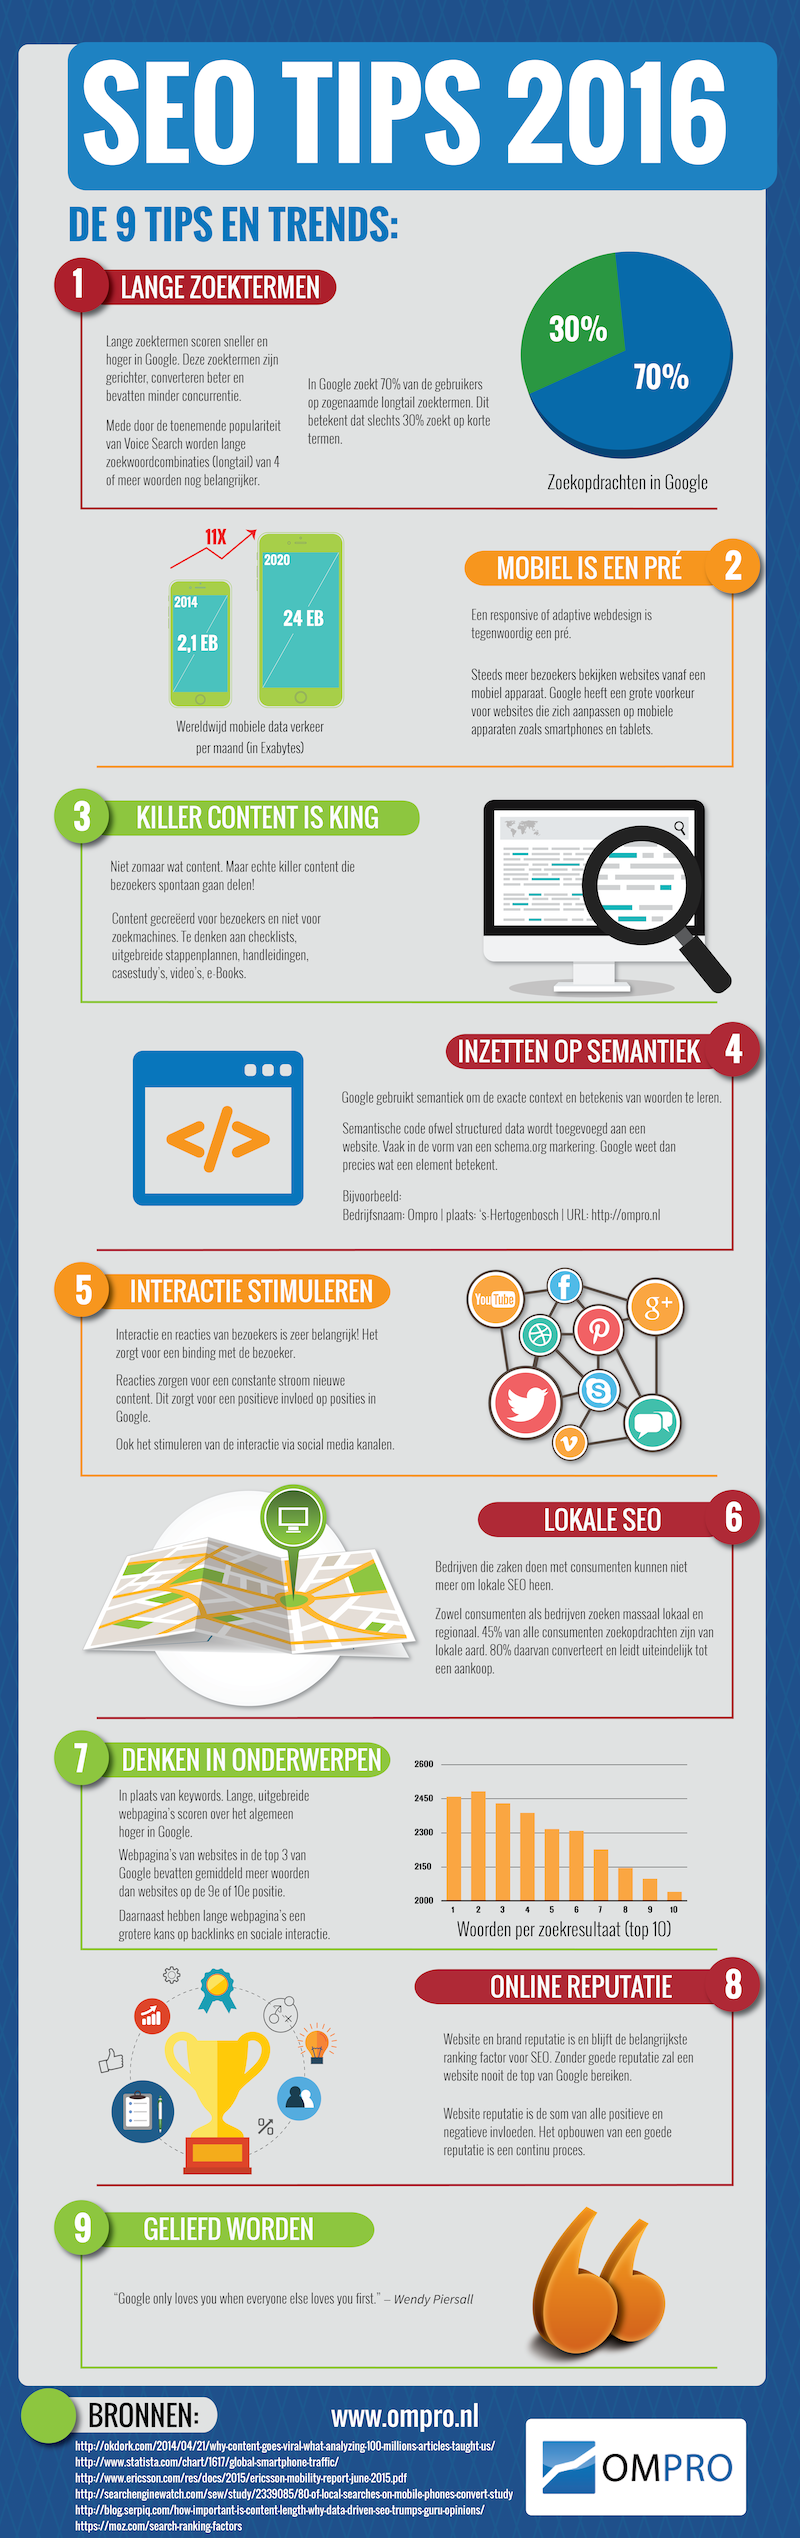 seo tips trends 2016 infographic